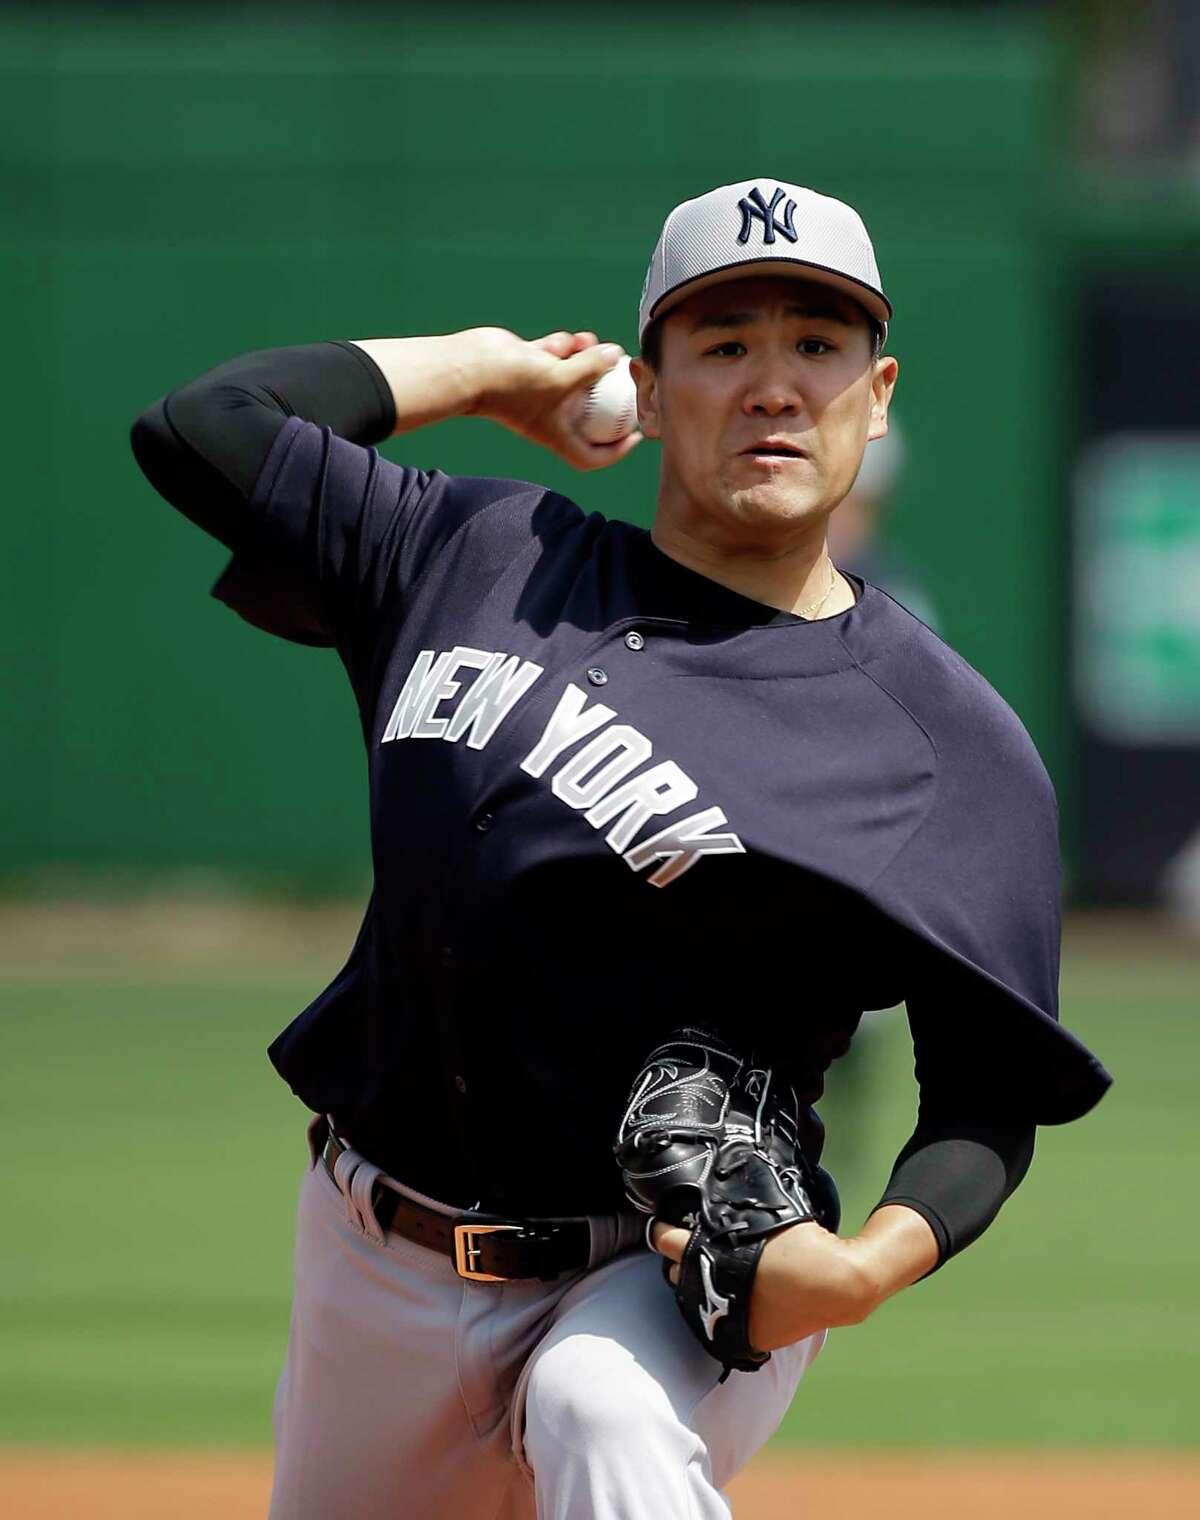 New York Yankees starting pitcher Masahiro Tanaka, of Japan, throws in the first inning of a spring training baseball game against the Philadelphia Phillies, Wednesday, March 22, 2017, in Clearwater, Fla. (AP Photo/John Raoux) ORG XMIT: FLJR101